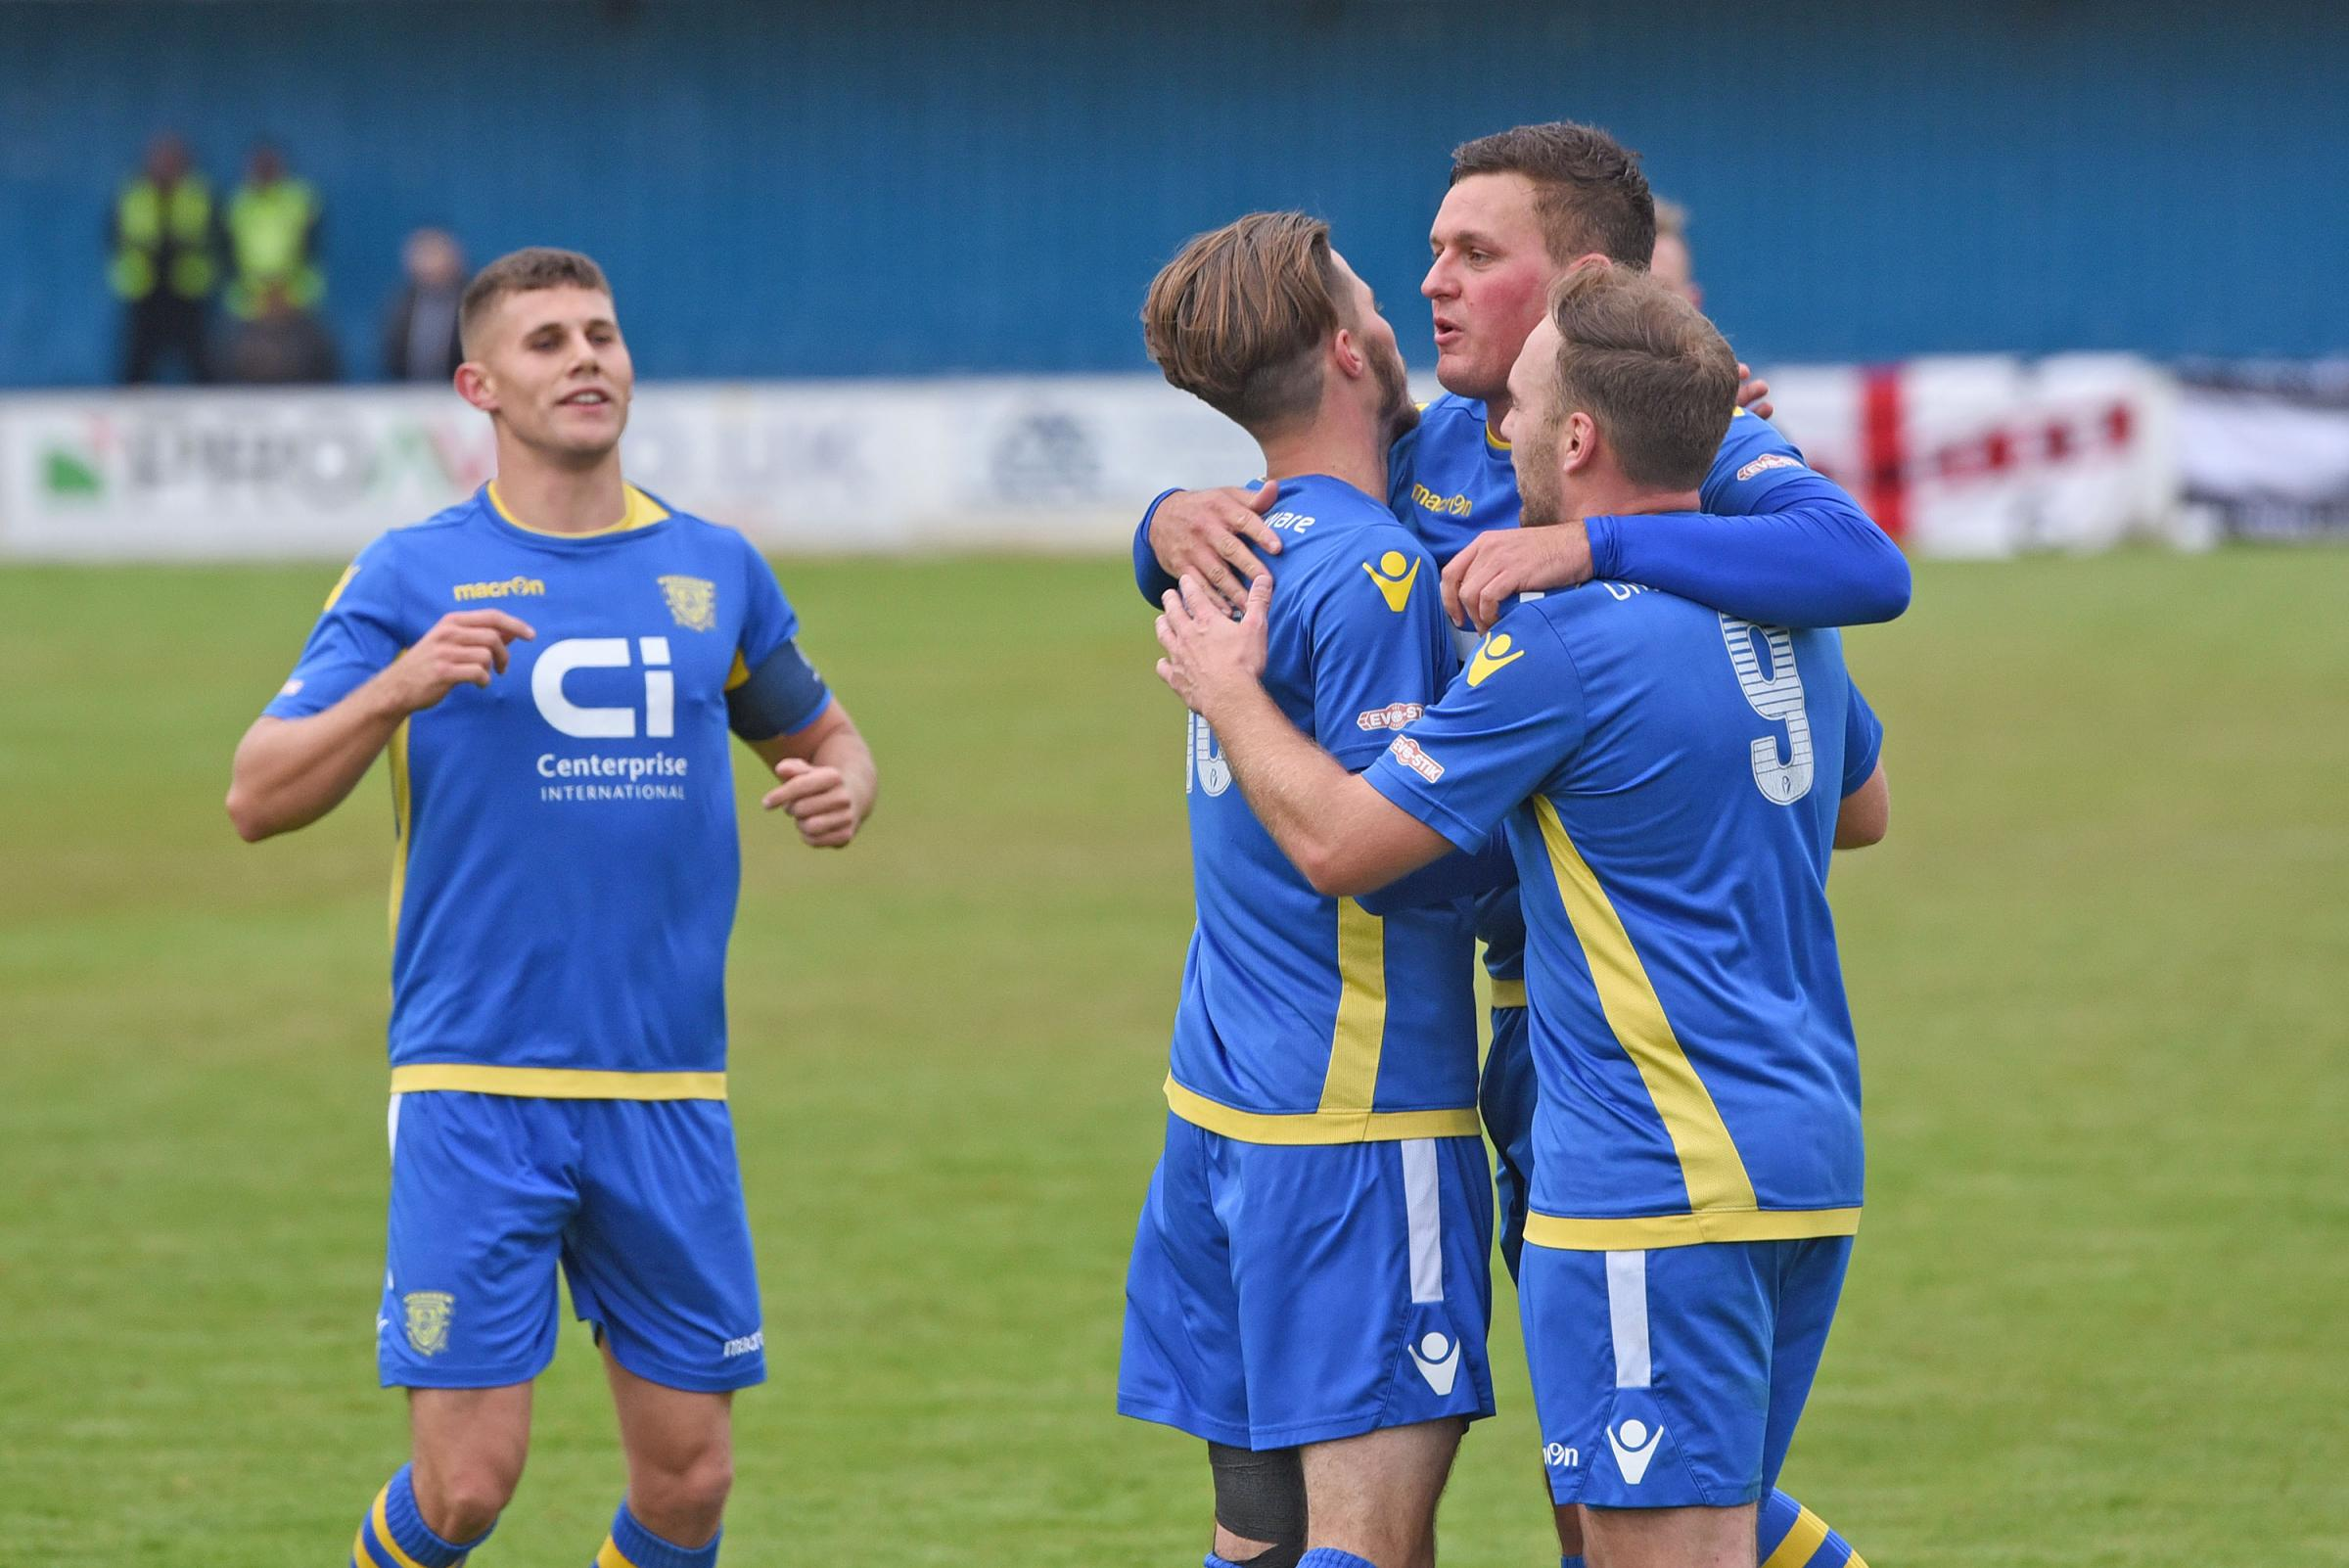 Ben Wright after scoring against Wimborne